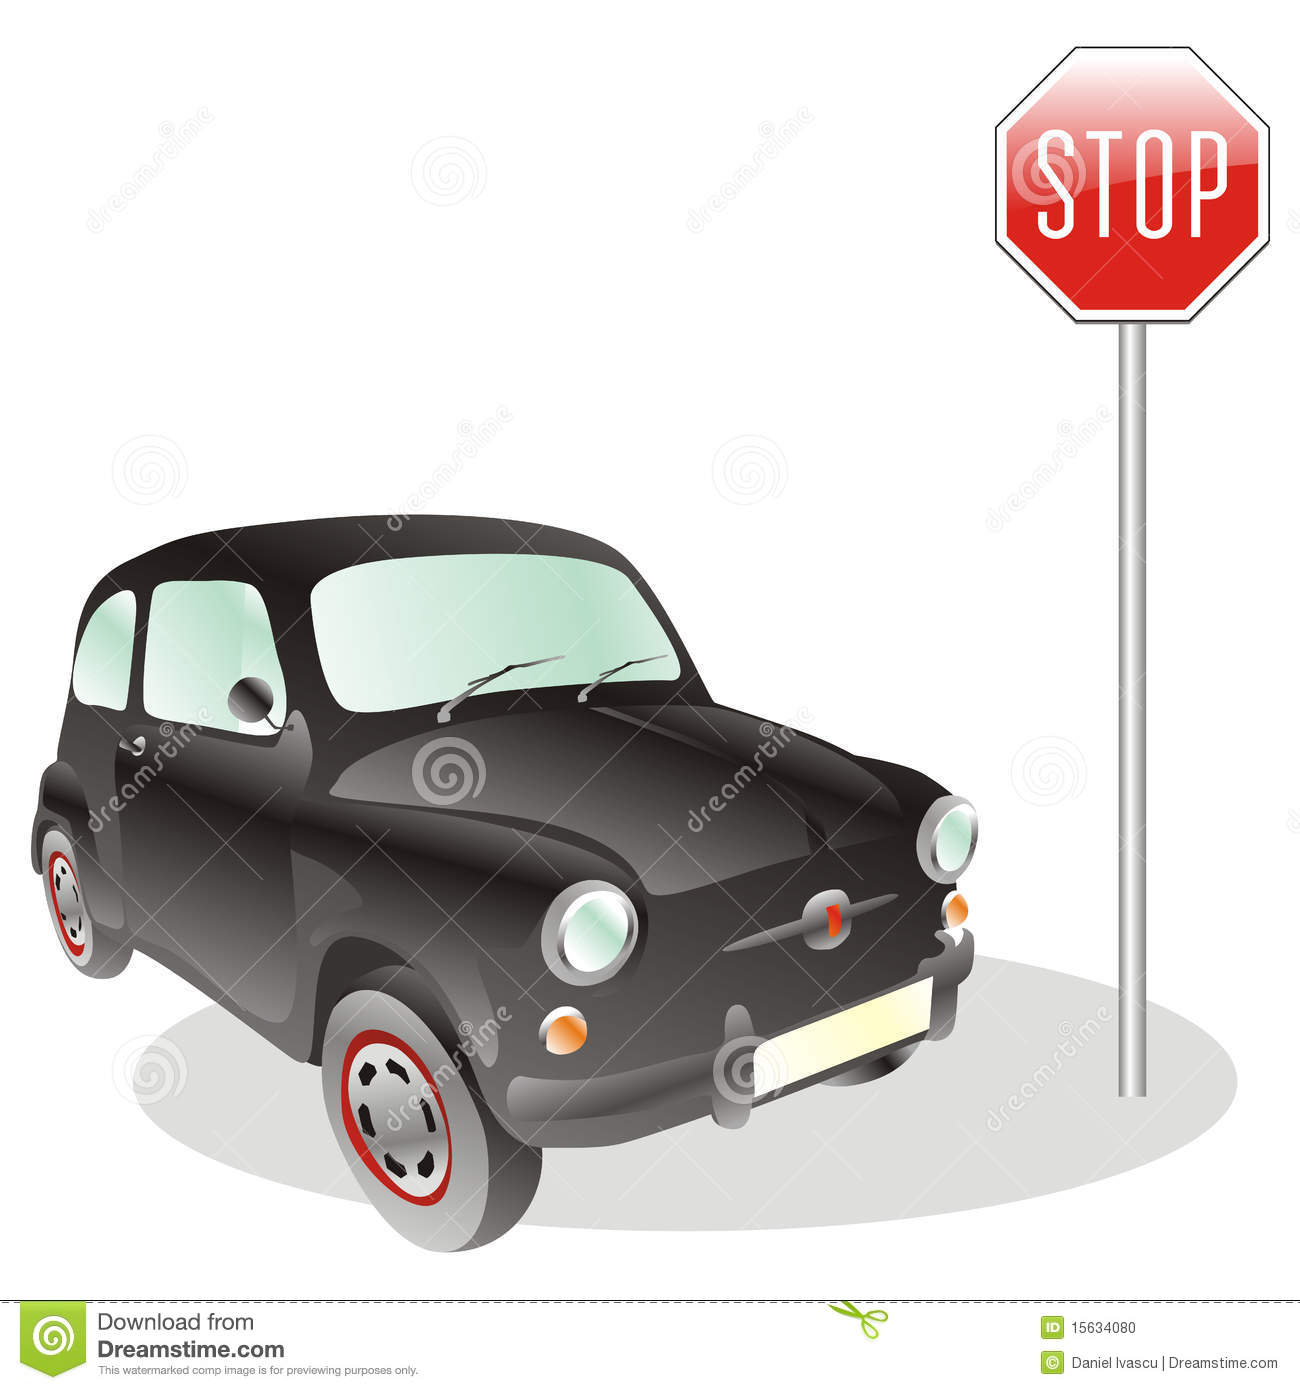 Car and stop sign stock vector. Illustration of clipart.